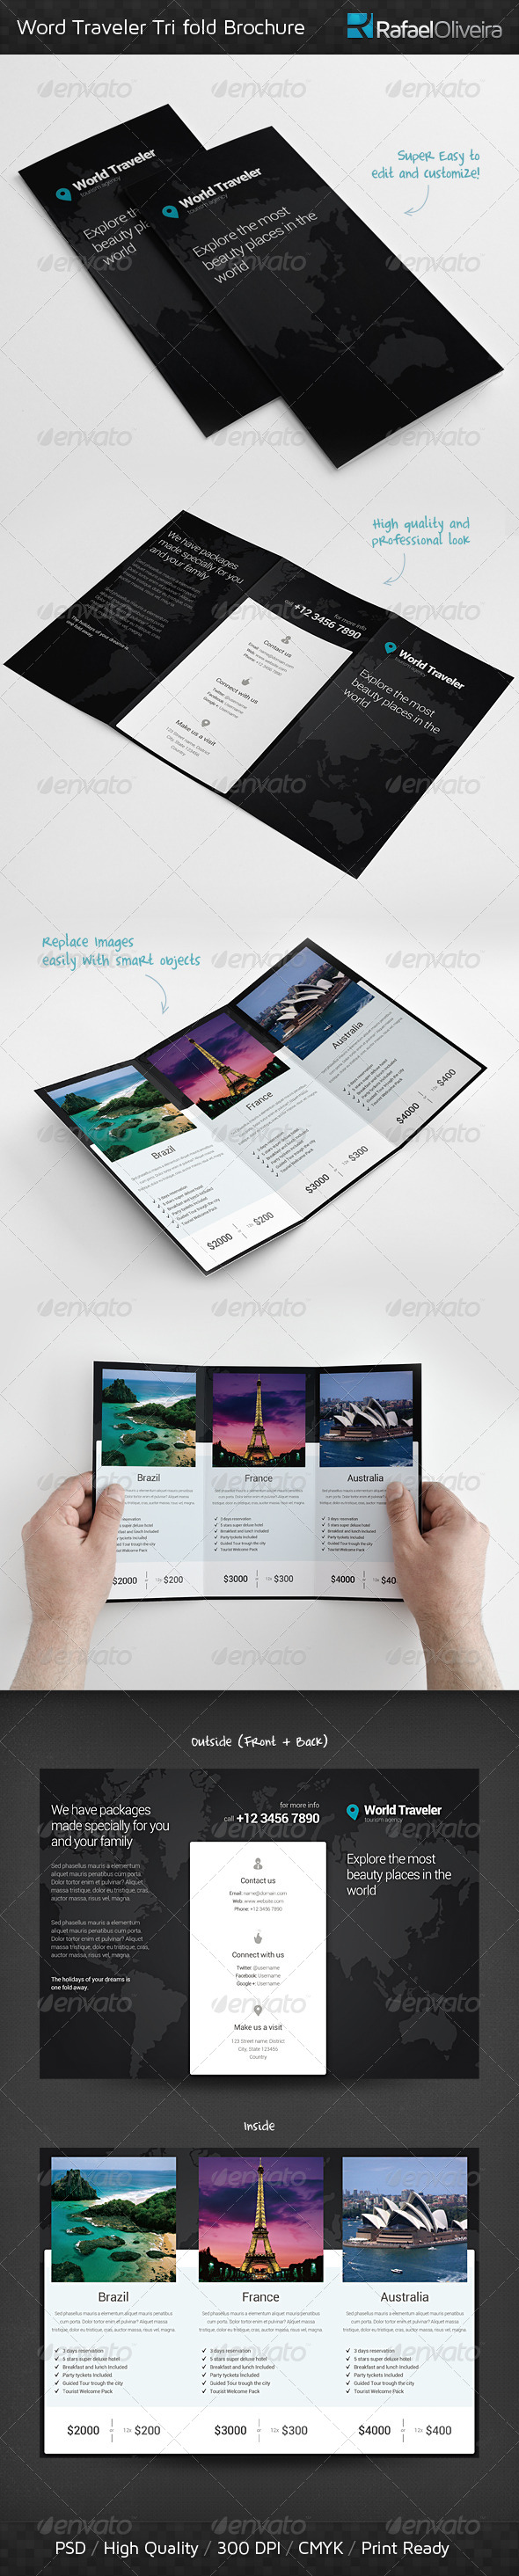 World Traveler Tri Fold Brochure - Corporate Brochures